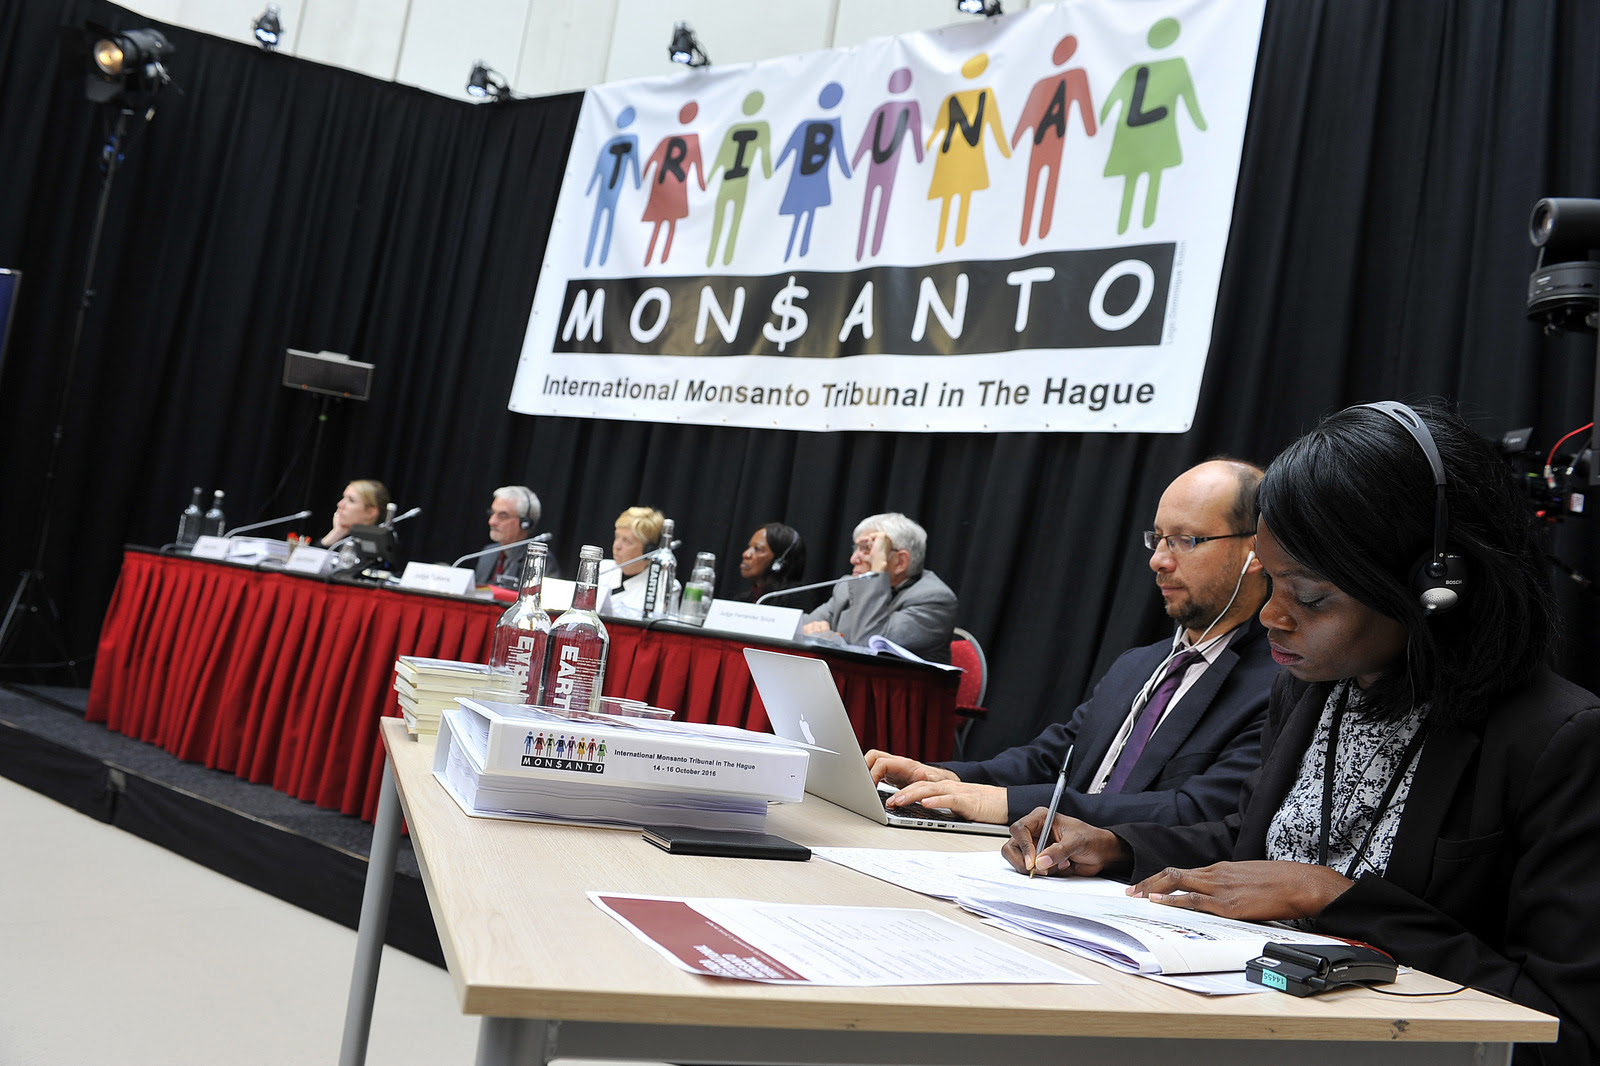 Judges, witnesses and experts gather for the first session of the People's Assembly, the hearings of the Monsanto Tribunal at the Hague in the Netherlands. (Photo: Monsanto Tribunal Follow/flickr/cc)